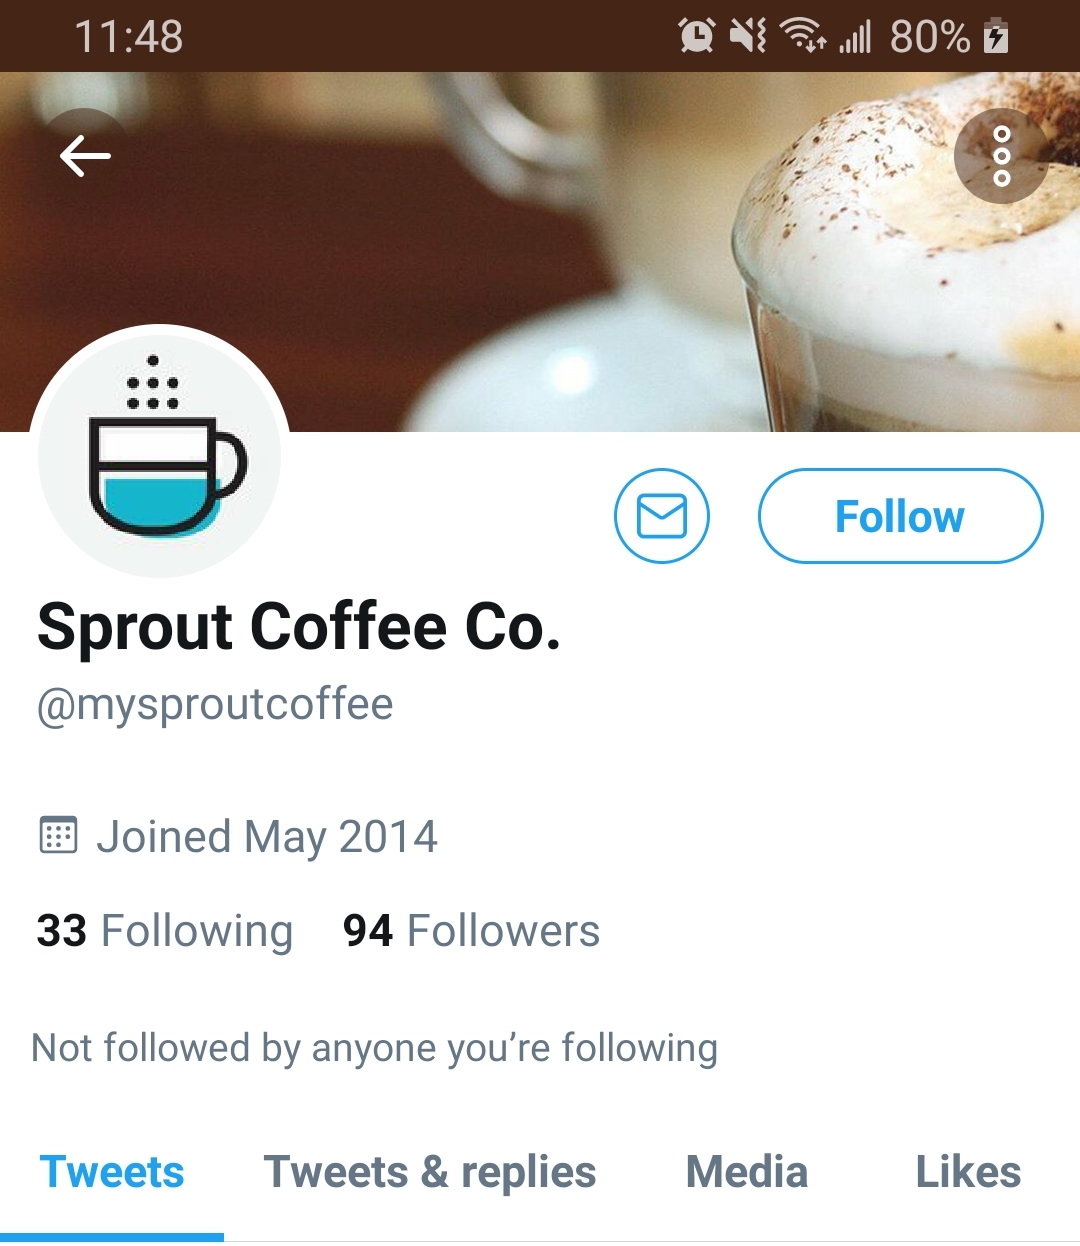 Sprout Coffee Twitter Profile